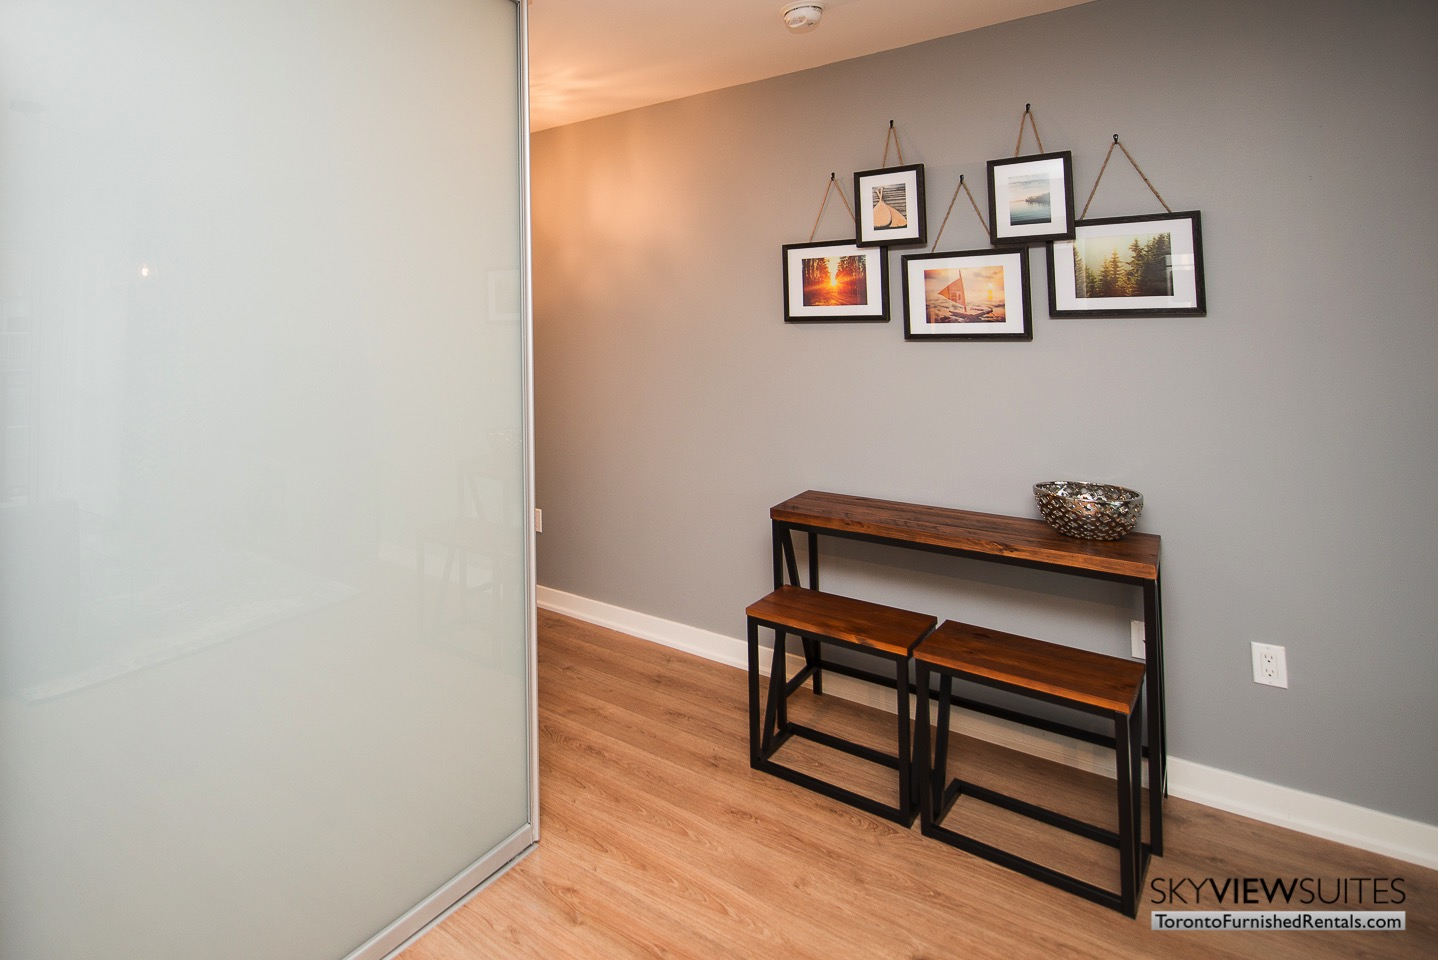 furnished-apartments-living-room-King-west